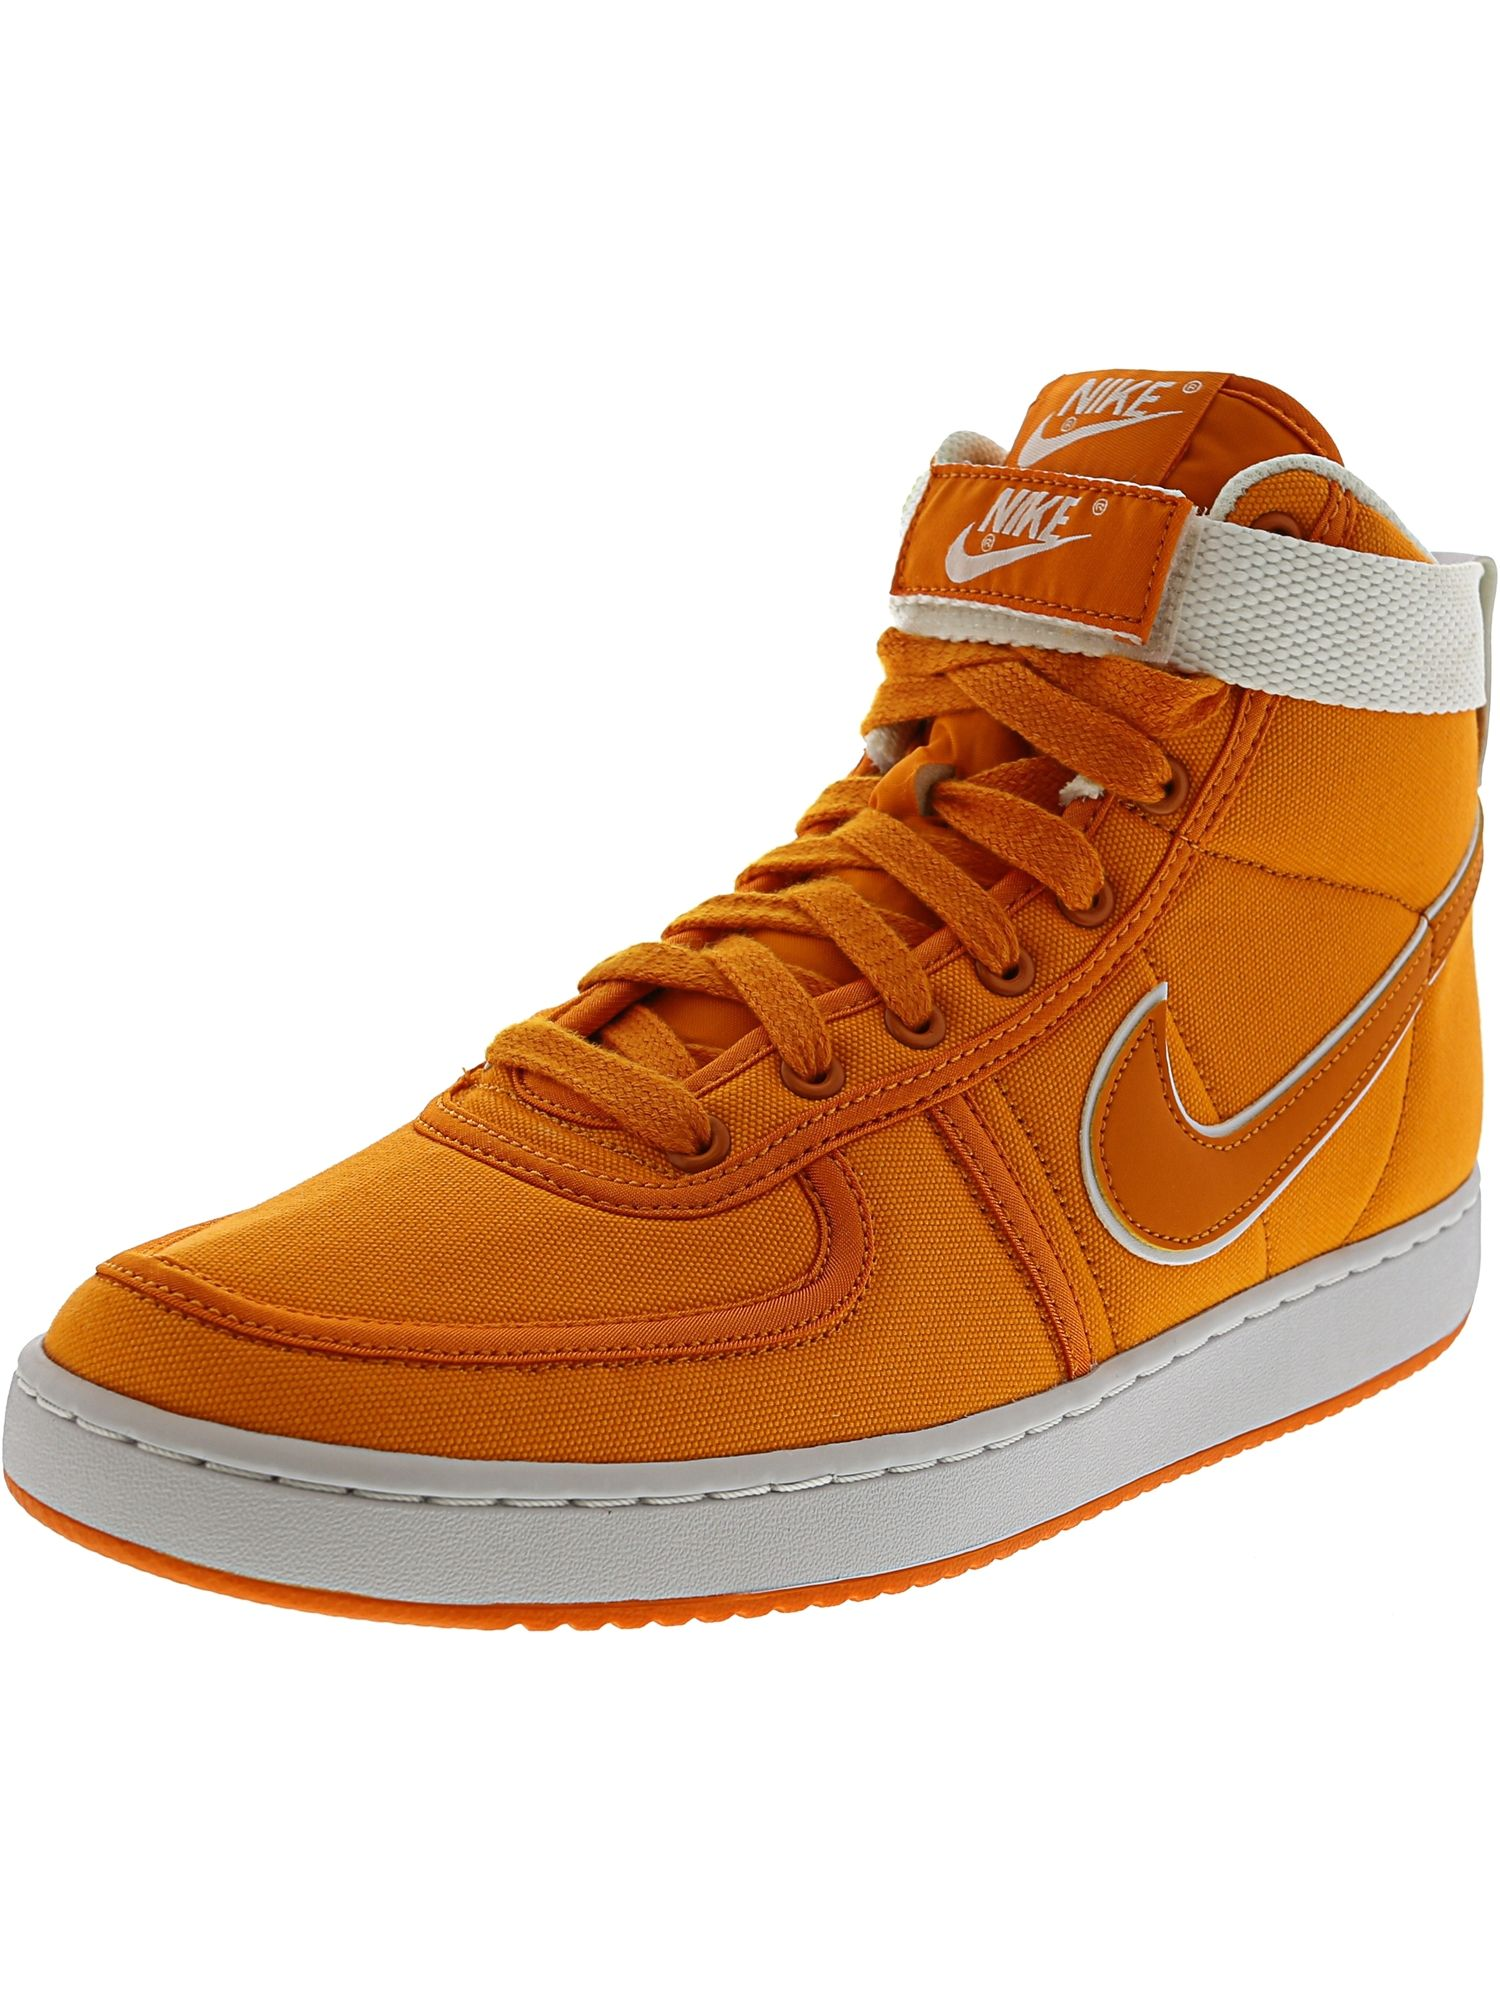 67f6c961b5e6 NIKE NIKE MEN S VANDAL HIGH SUPREME CANVAS QS HIGH-TOP BASKETBALL SHOE.  nike   shoes